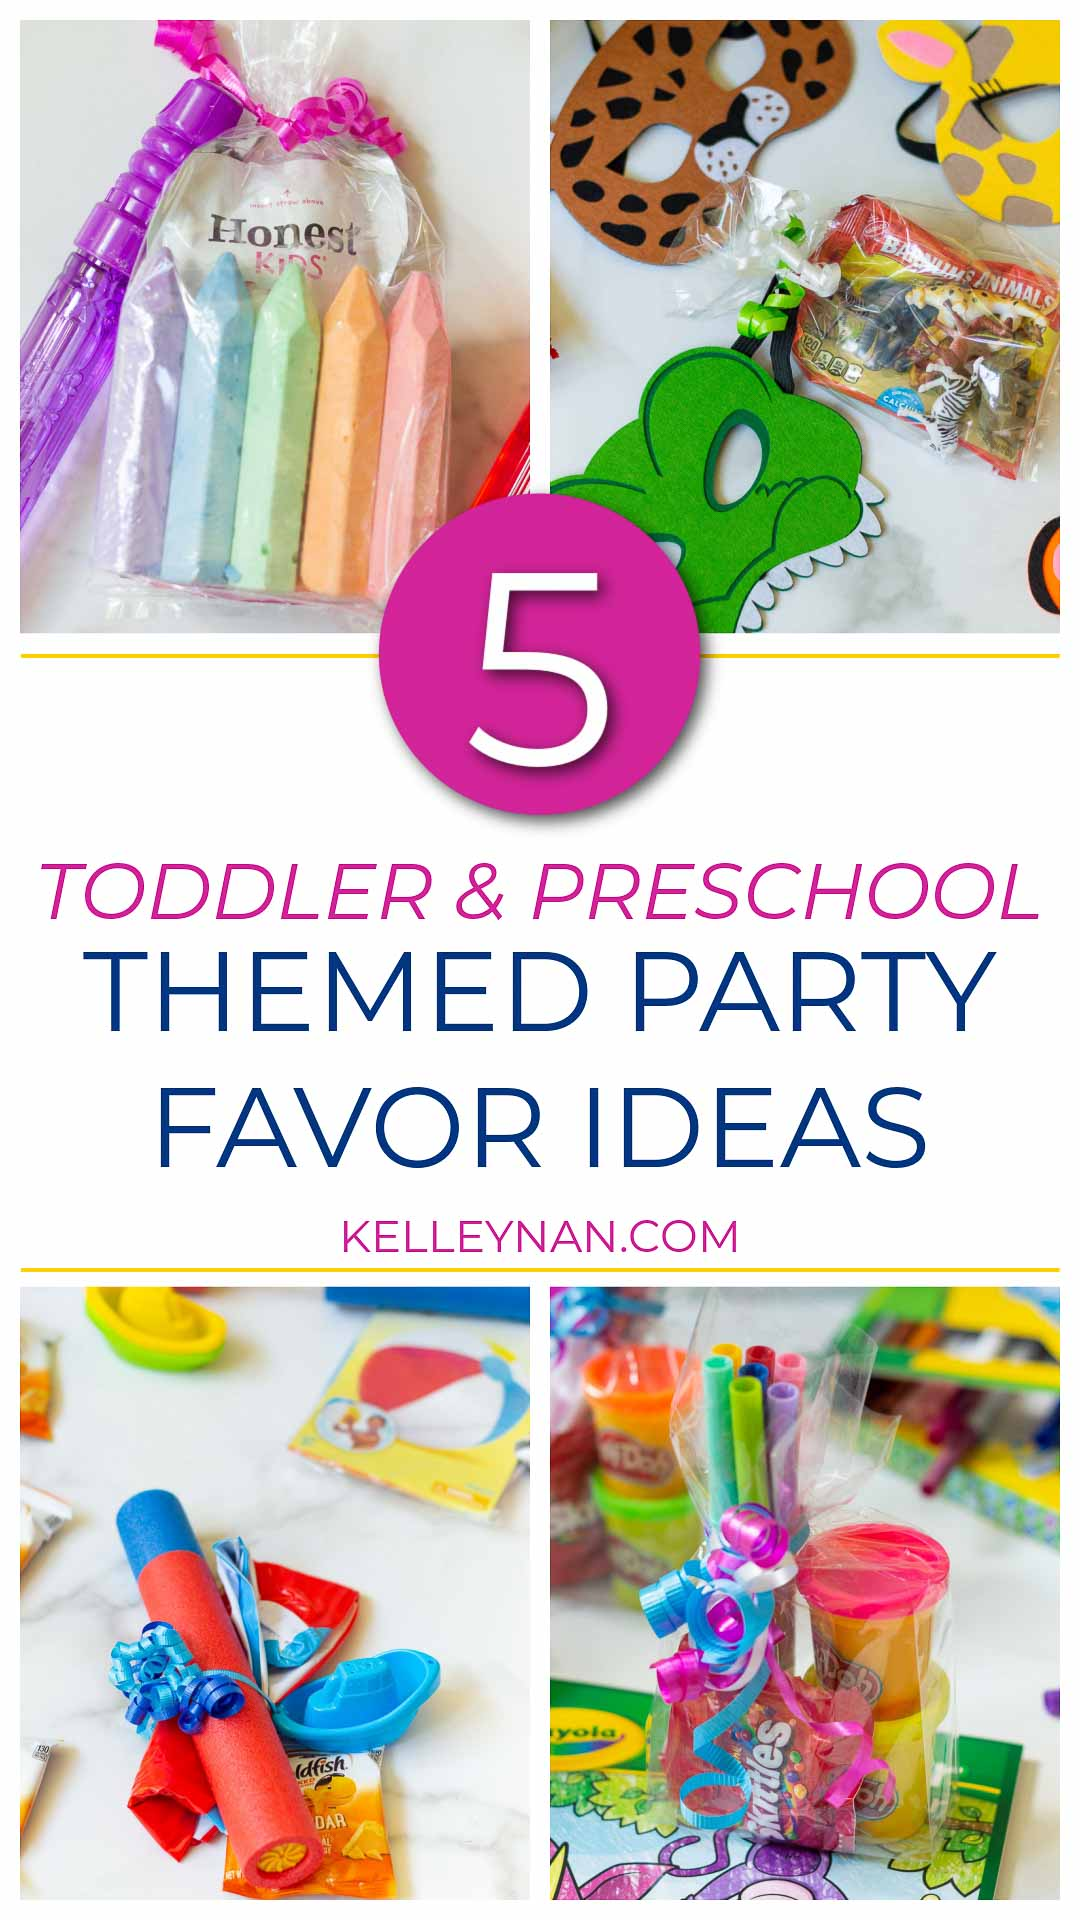 5 Easy, Inexpensive Themed Party Favor Ideas for Toddlers and PreSchoolers